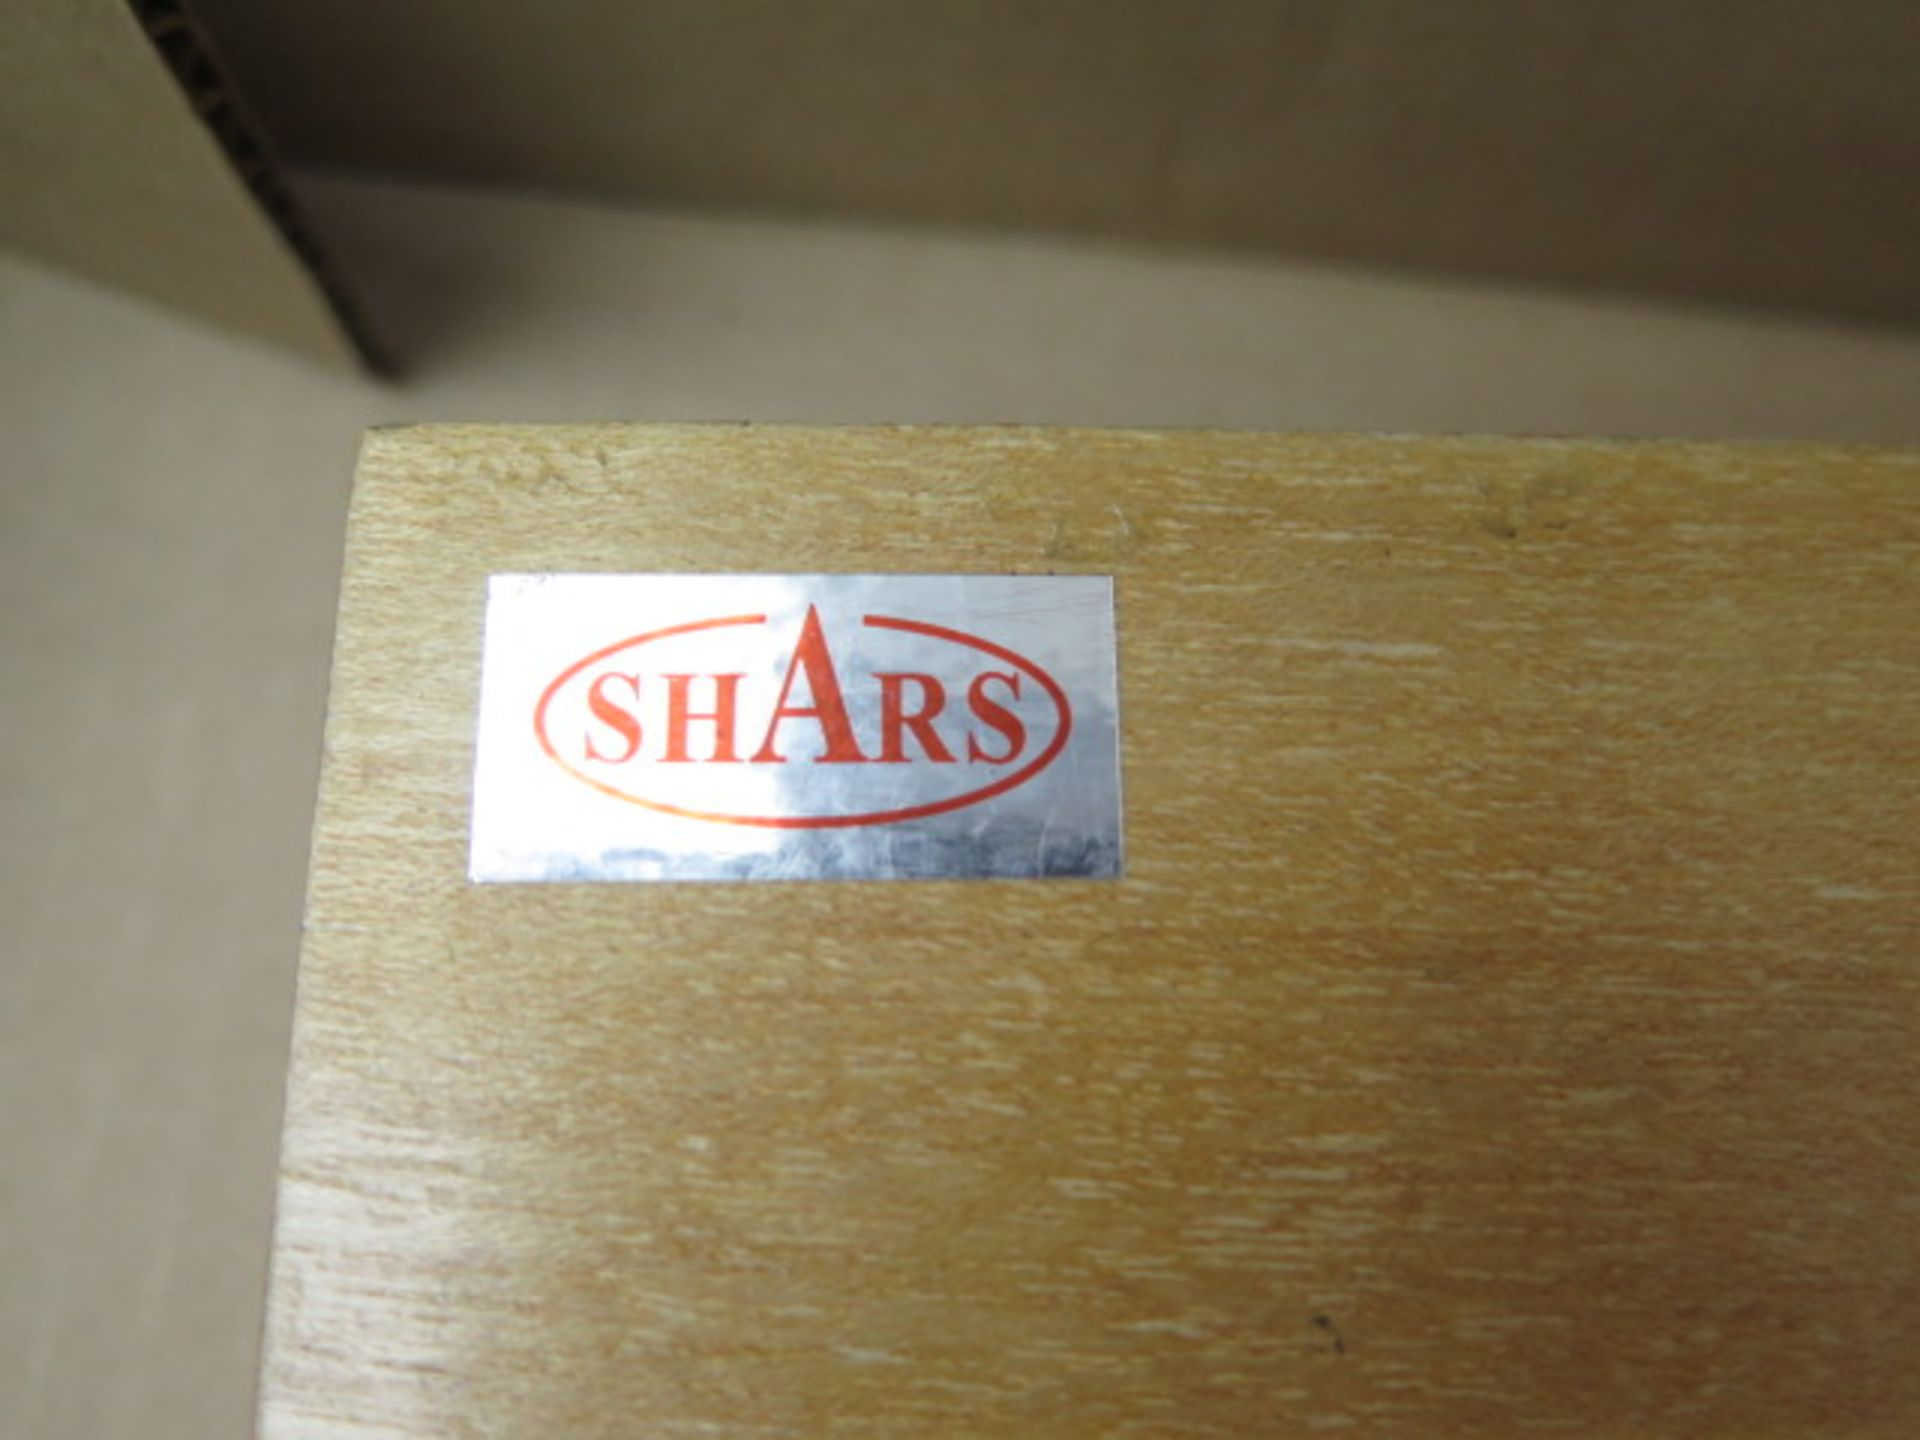 Shars Universal Indicator (SOLD AS-IS - NO WARRANTY) - Image 4 of 4